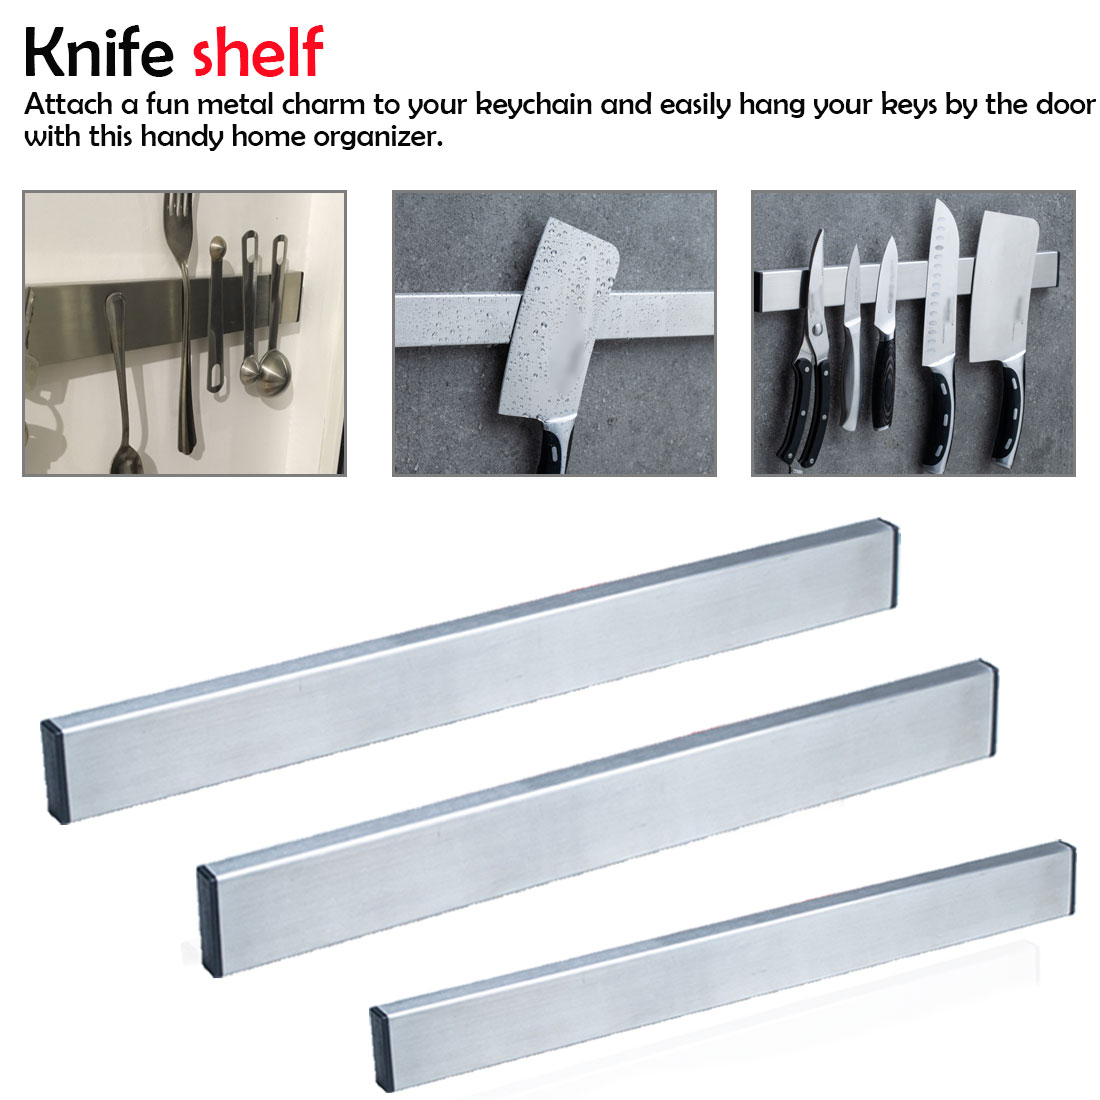 Magnetic Self-adhesive 30cm/40cm/50cm Length Knife Holder Stainless Steel 304 Magnet Knife Holder Rack Stand For Knives